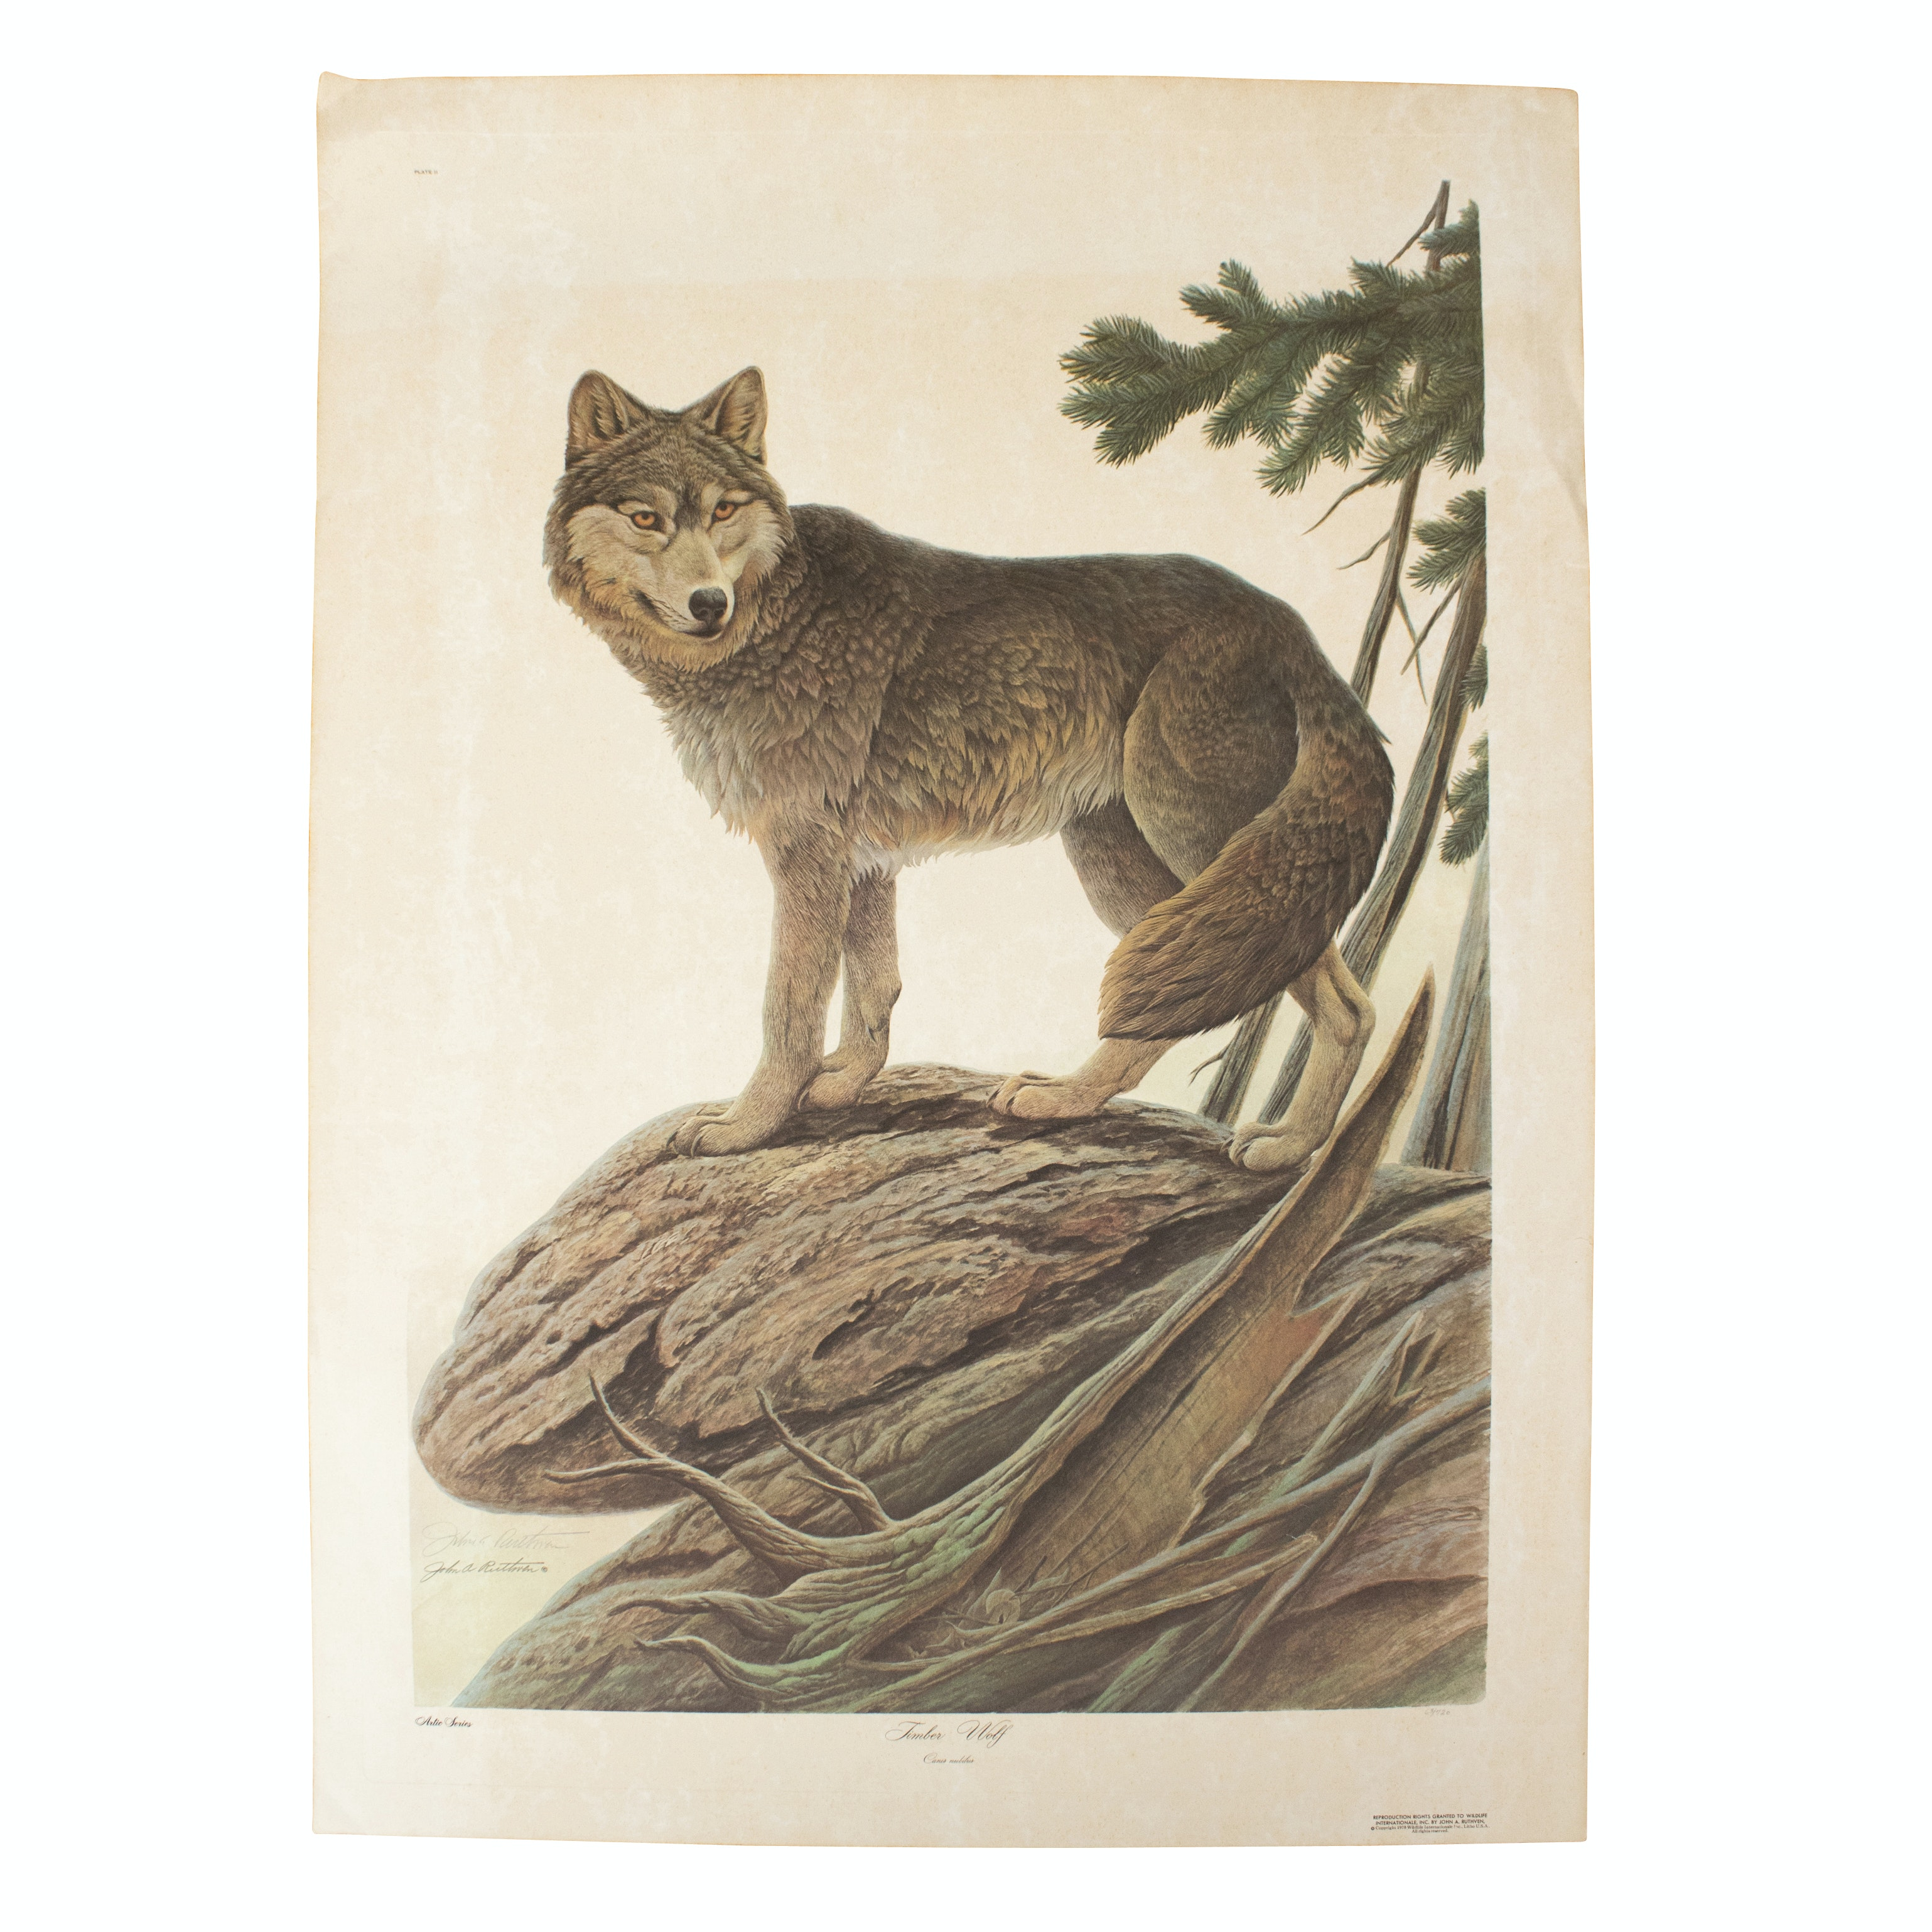 """John Ruthven Signed Limited Edition Offset Lithograph """"Timber Wolf"""""""